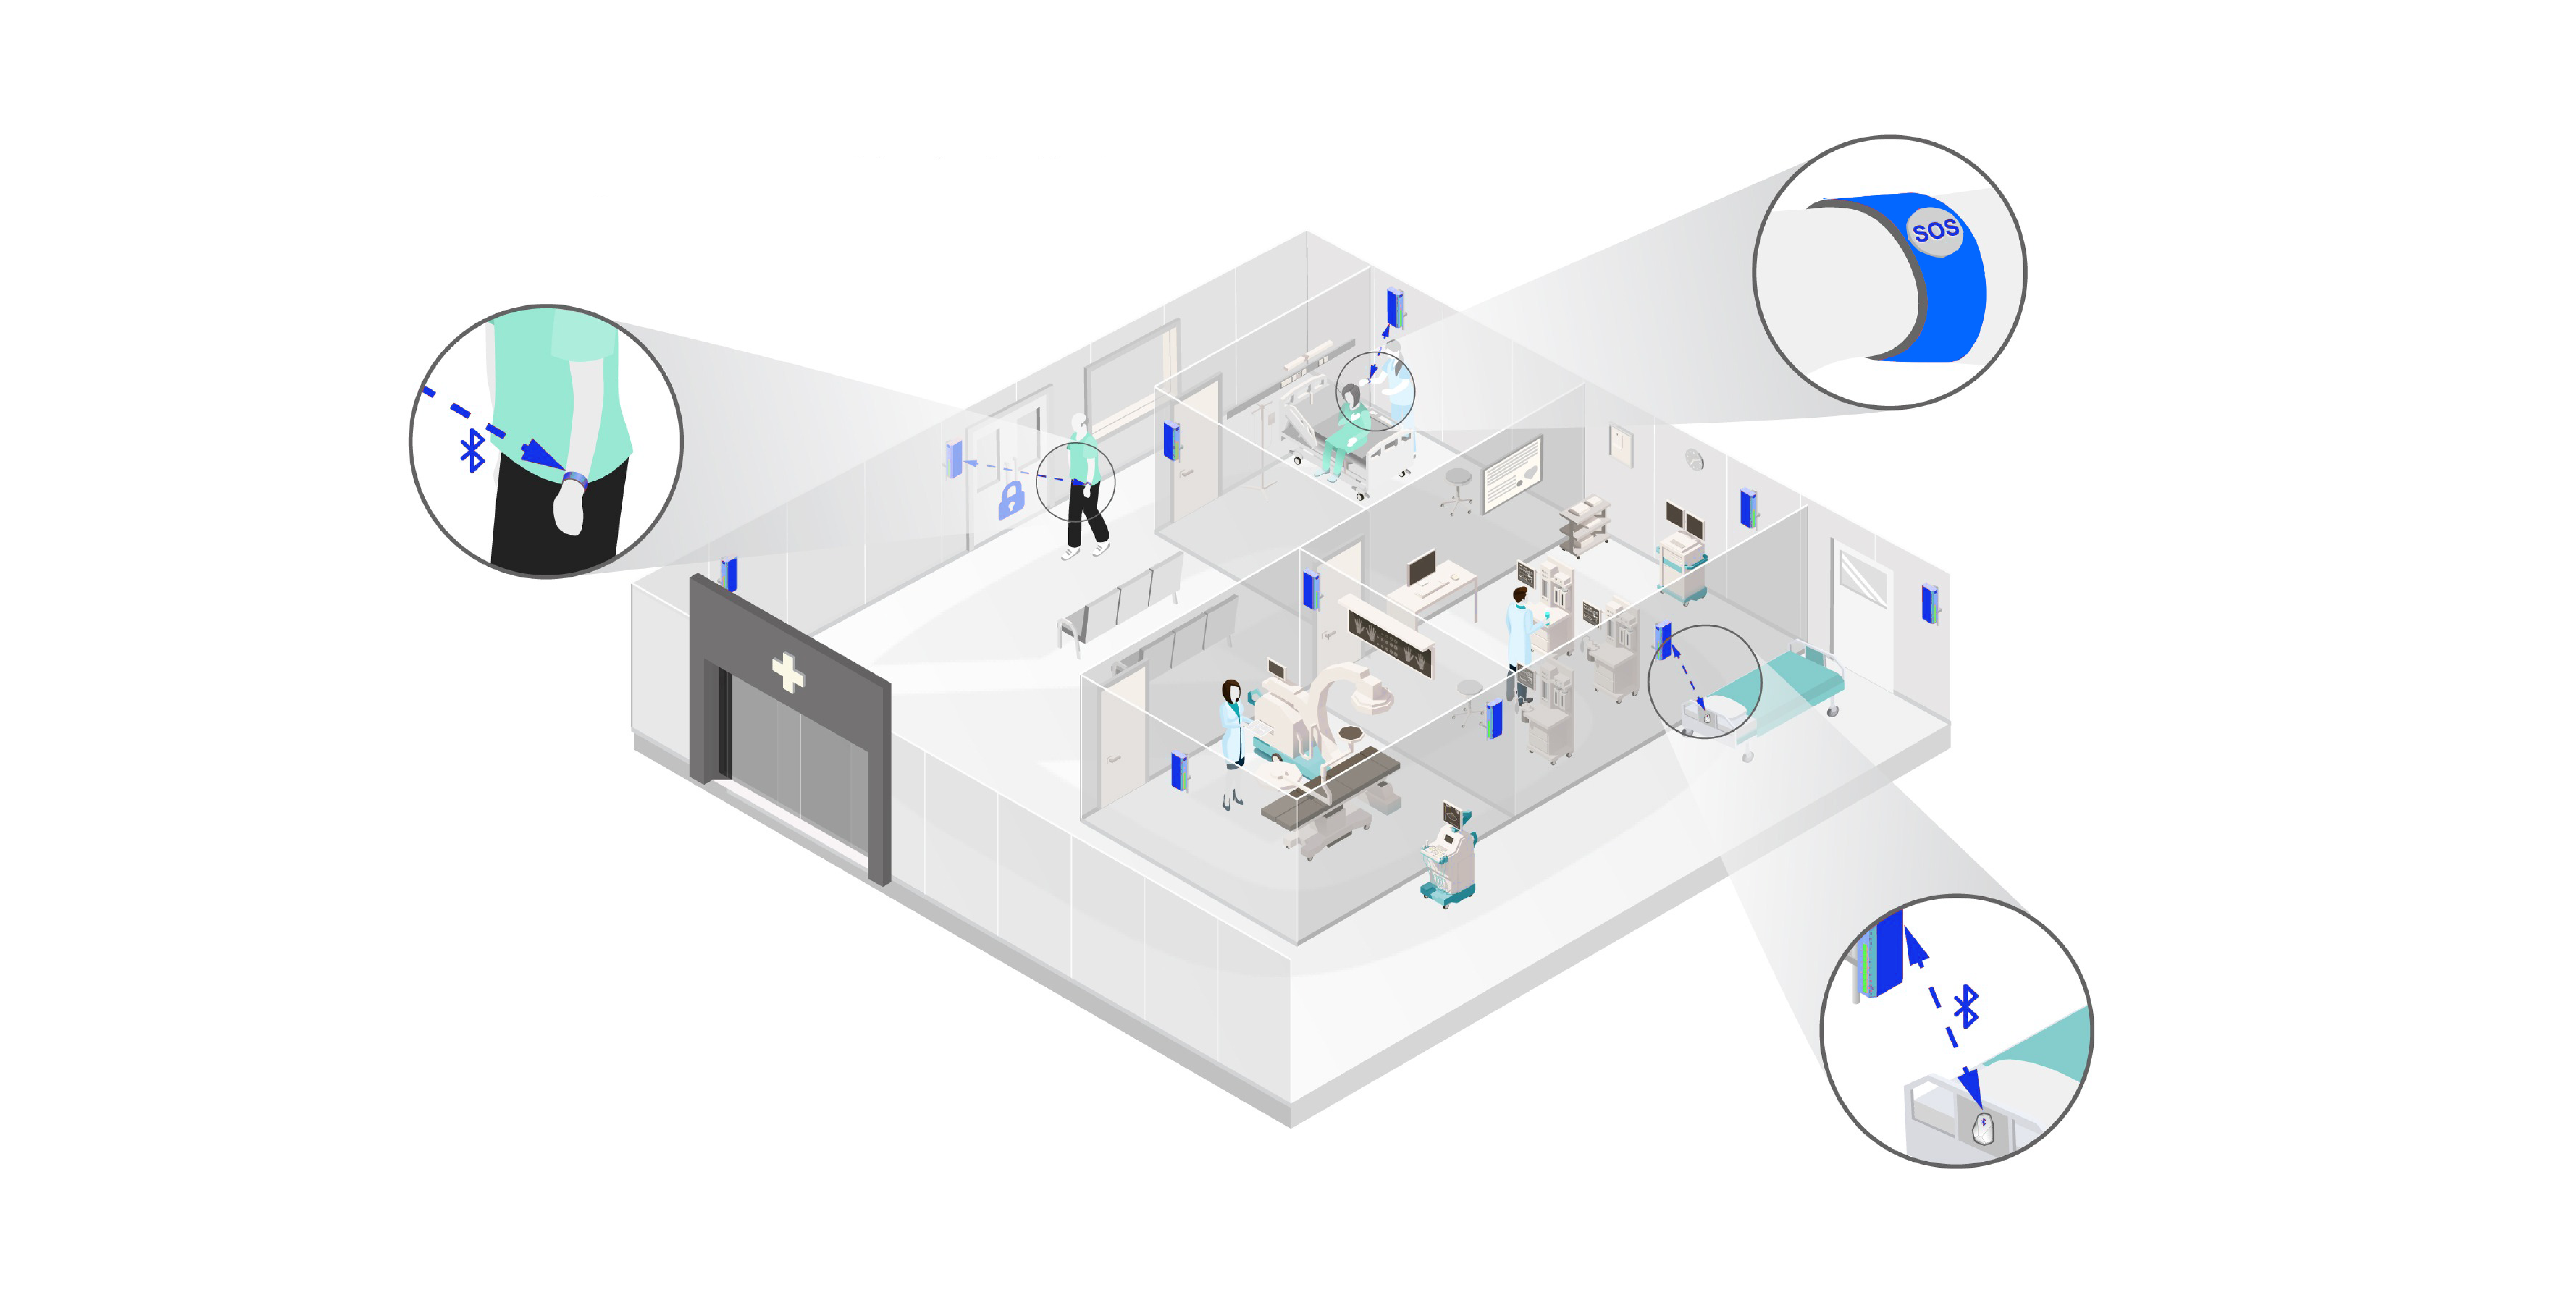 photo of a hospital to show the Monitoring and asset tracking in the healthcare sector using Bluetooth Low Energy (BLE)